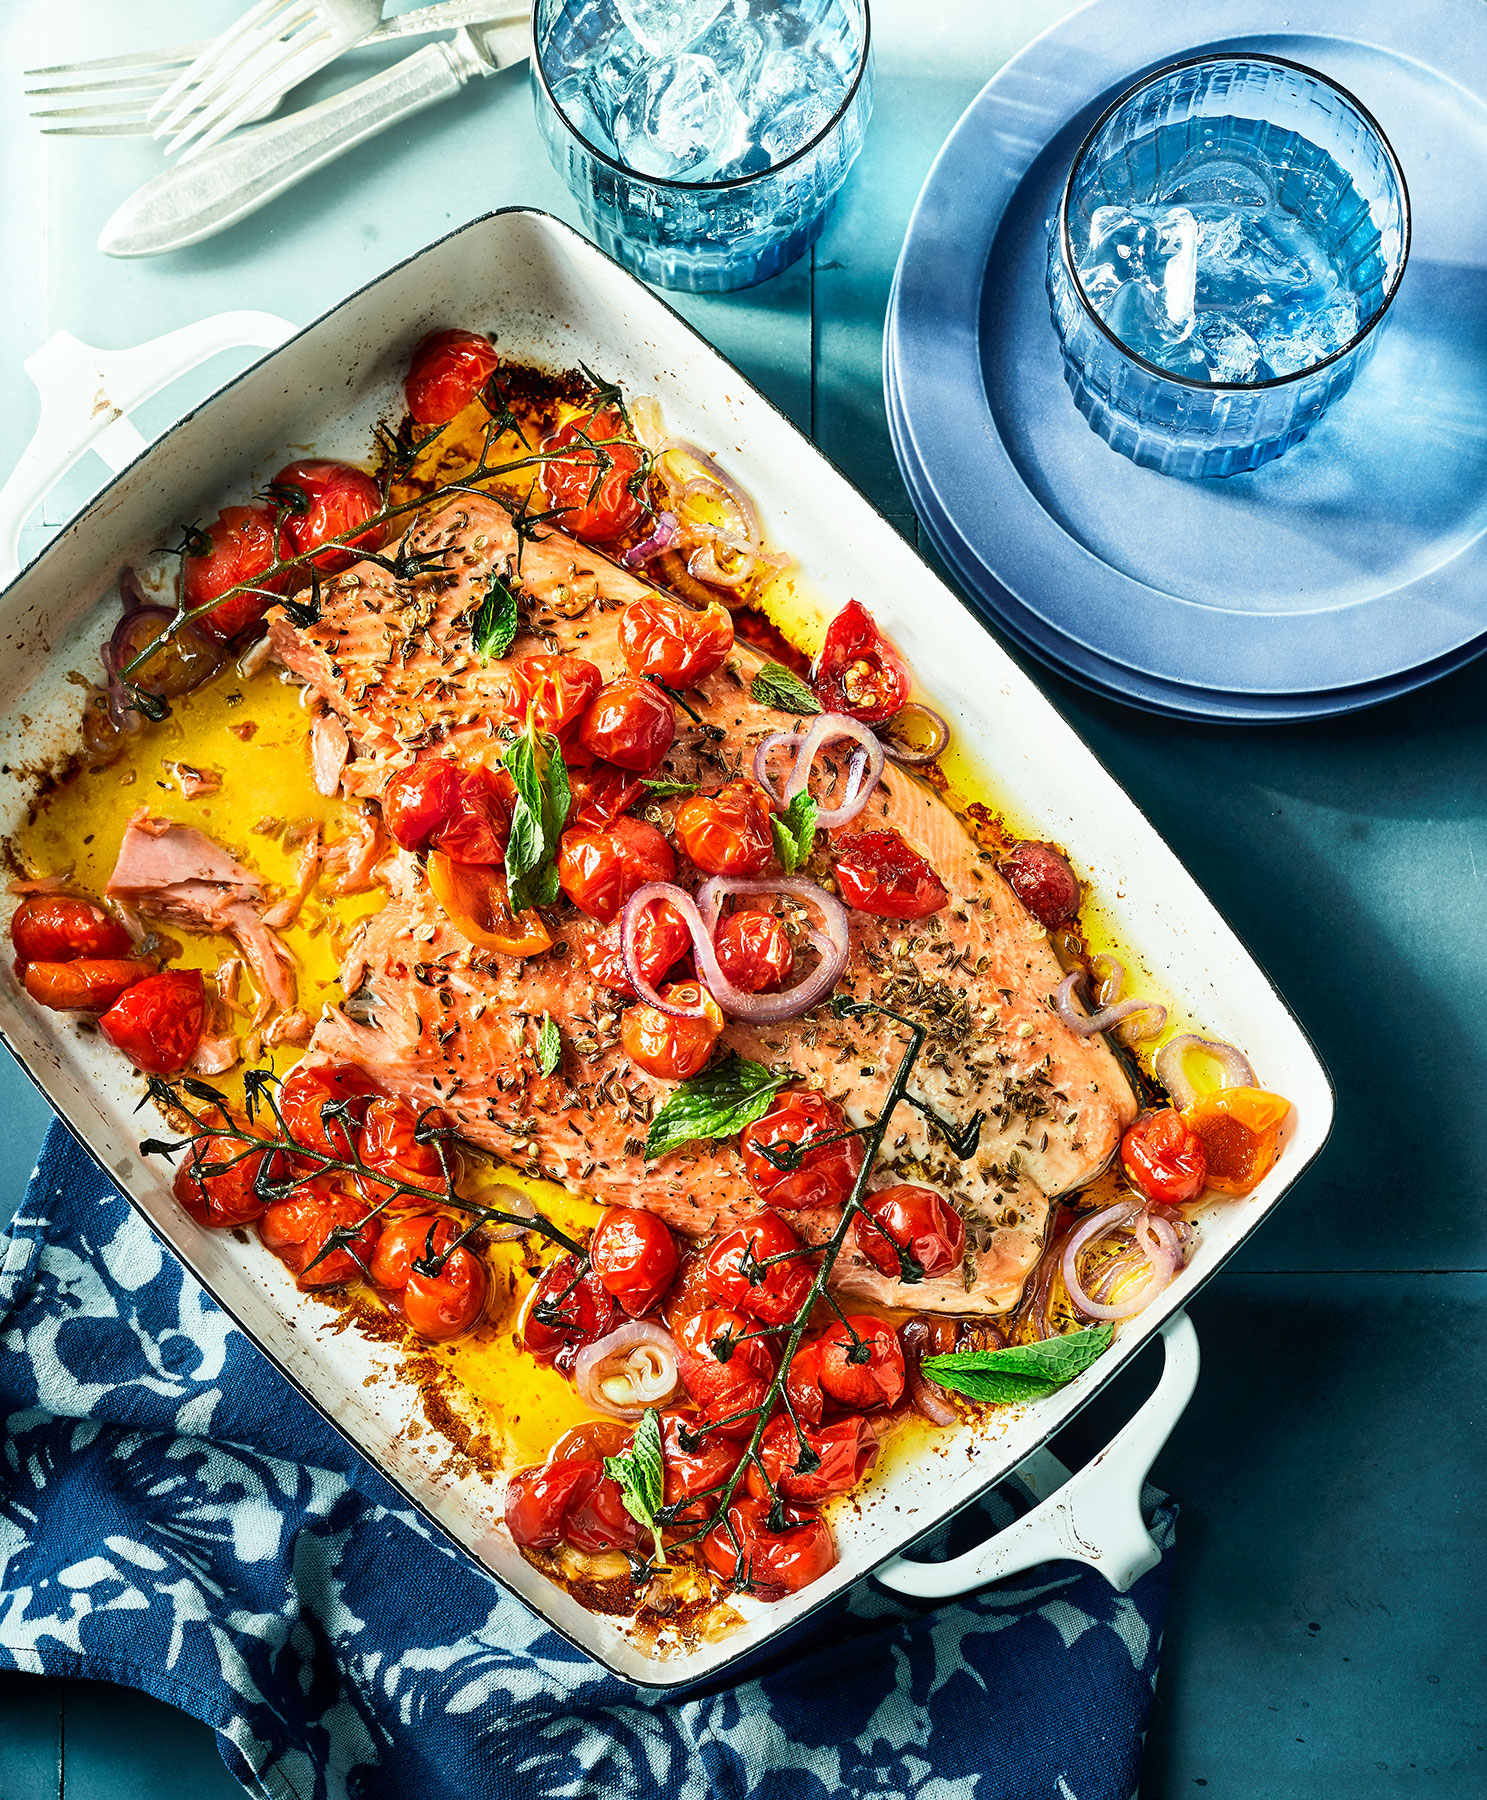 Roast Salmon With Tomatoes and Peppadews